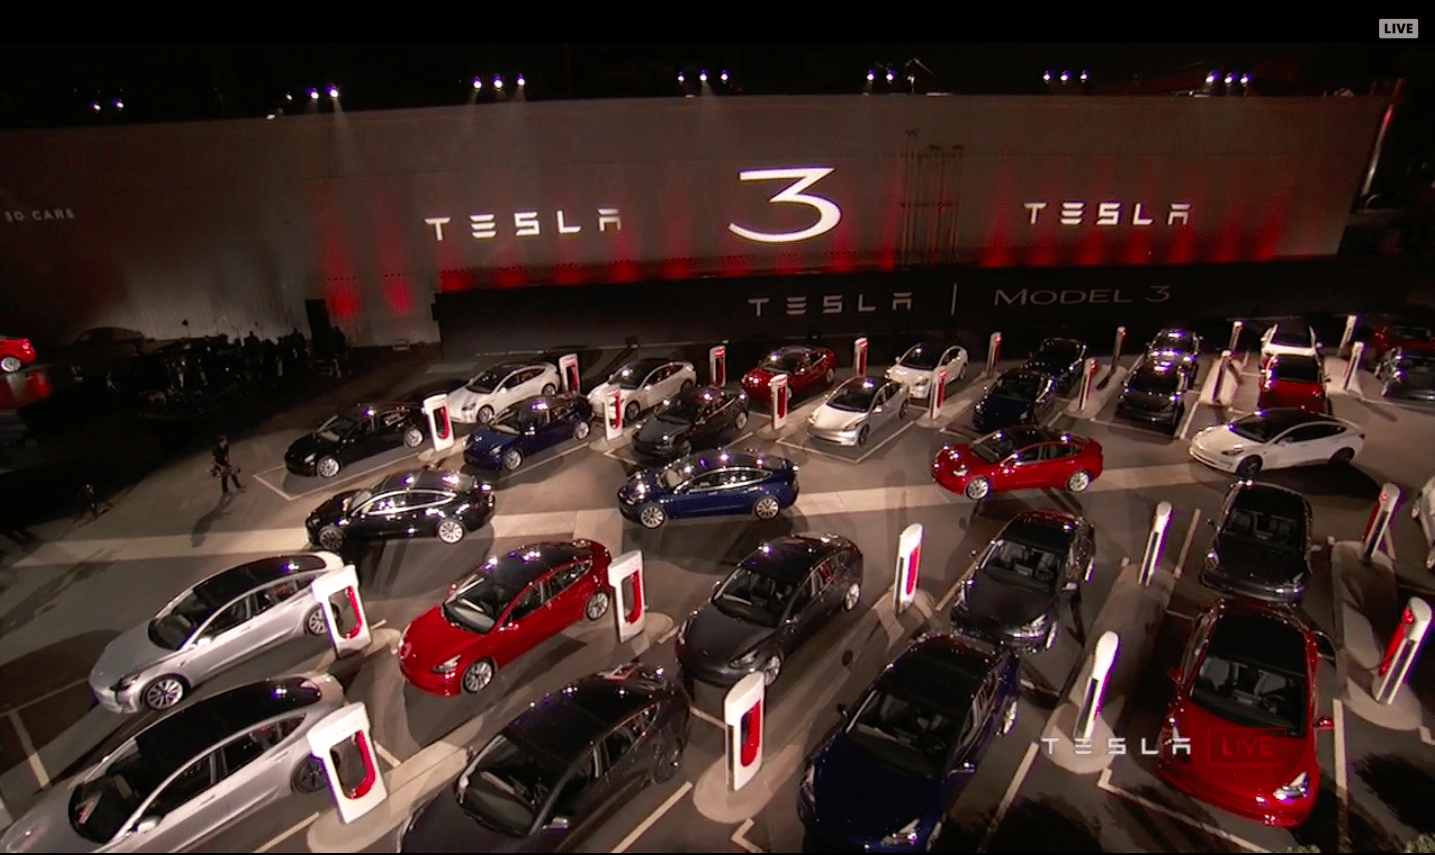 4. Tesla isn't actually mass-producing the Model 3 yet.